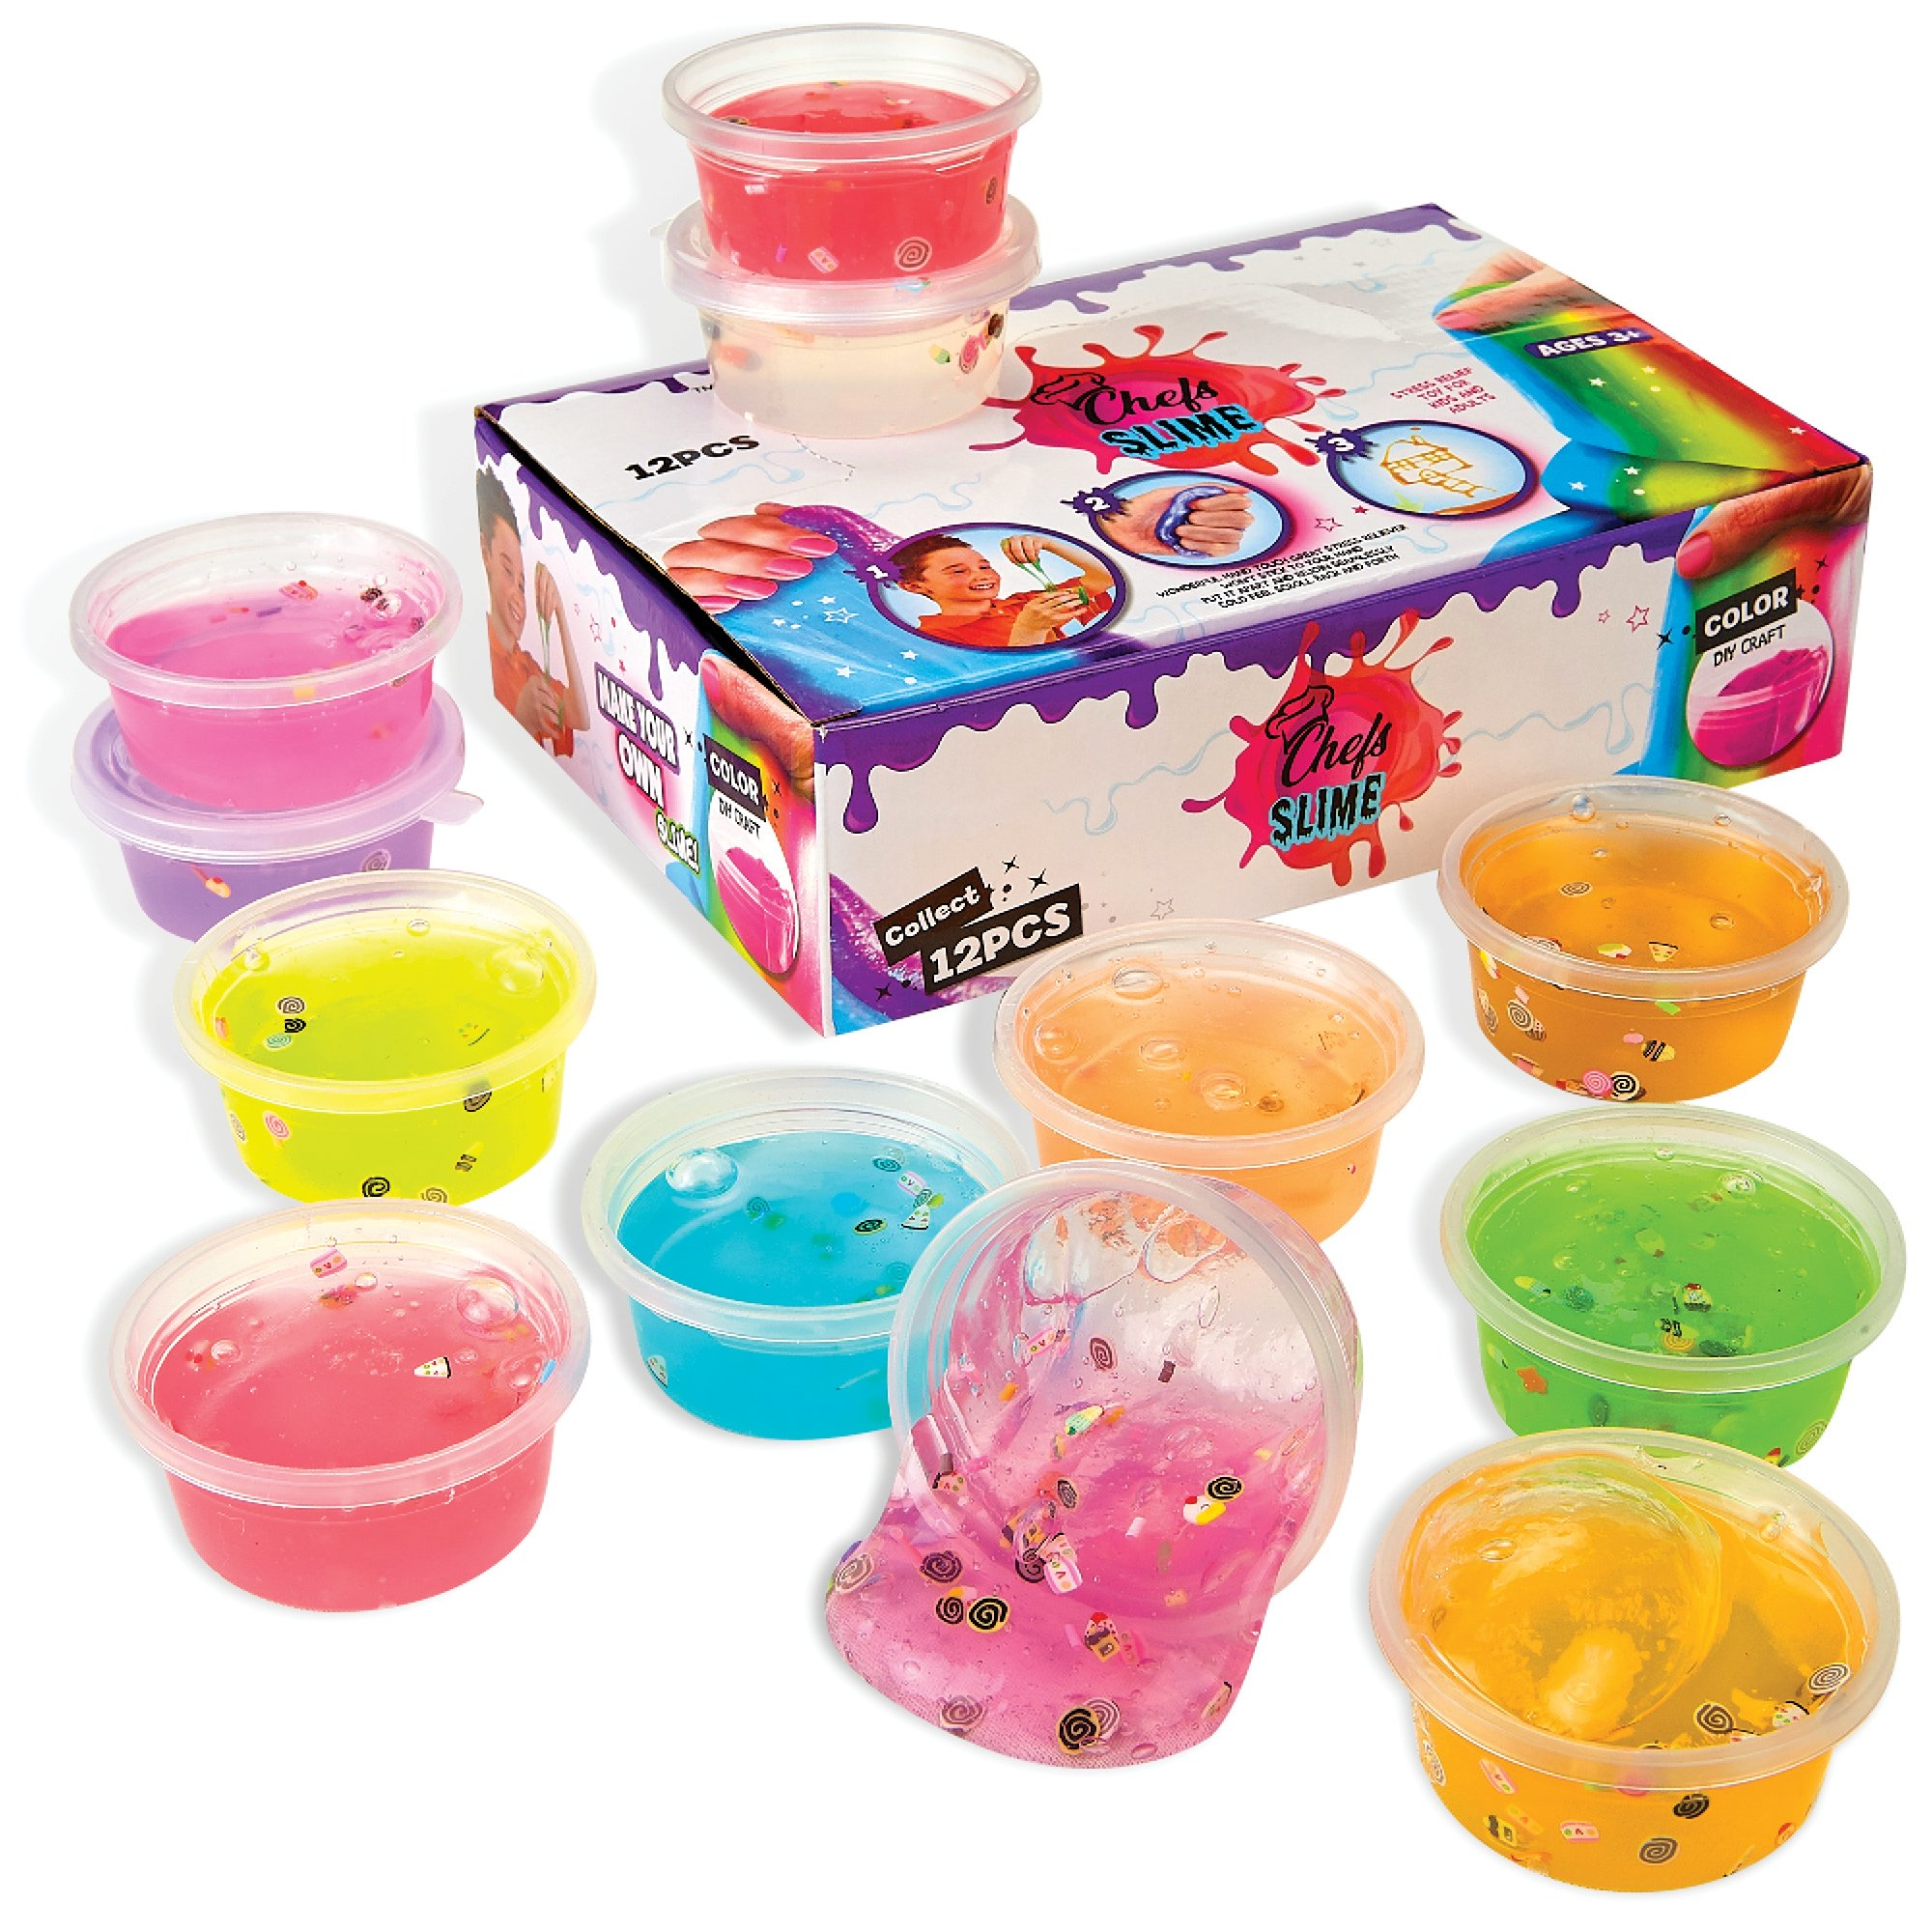 - 12 Pack   Fun Mud Slime  Jumbo Pack   Putty - Non Sticky, Fluffy, Stretchy for Stress Relief, Super Soft & Squishy Sludge Toy for Kids and Adults - 12 Pack -